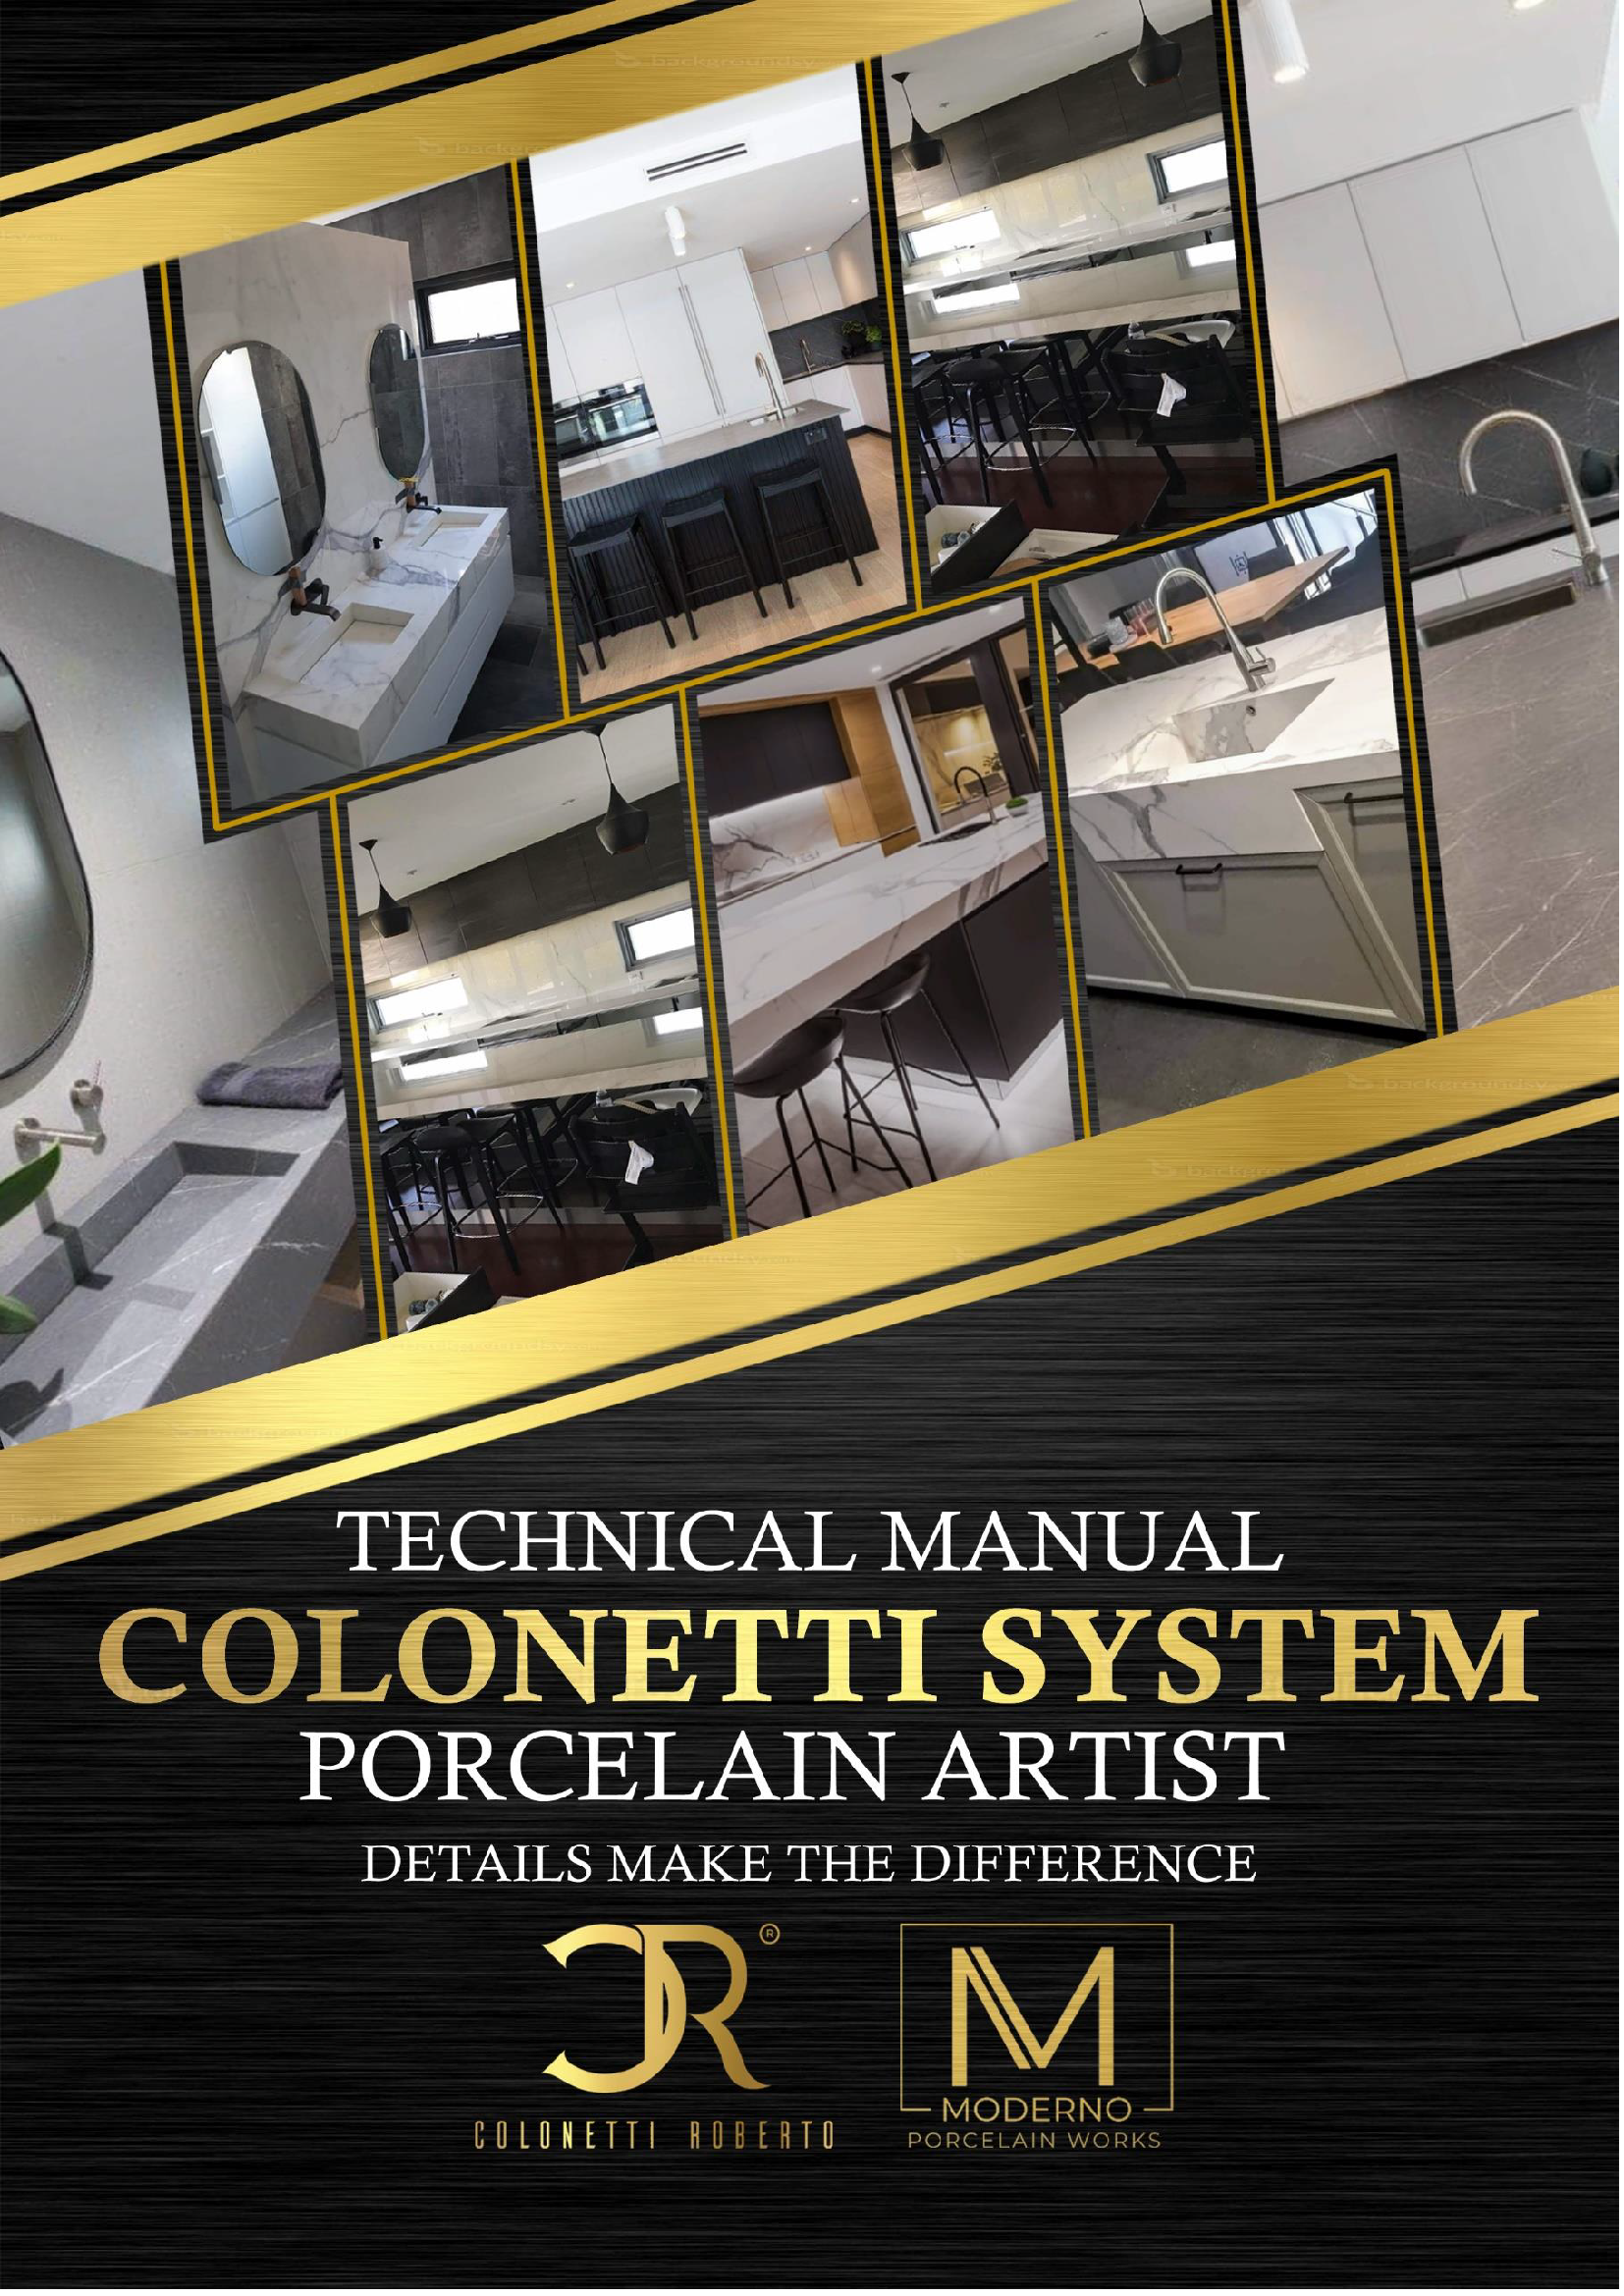 Colonetti System - Technical Manual